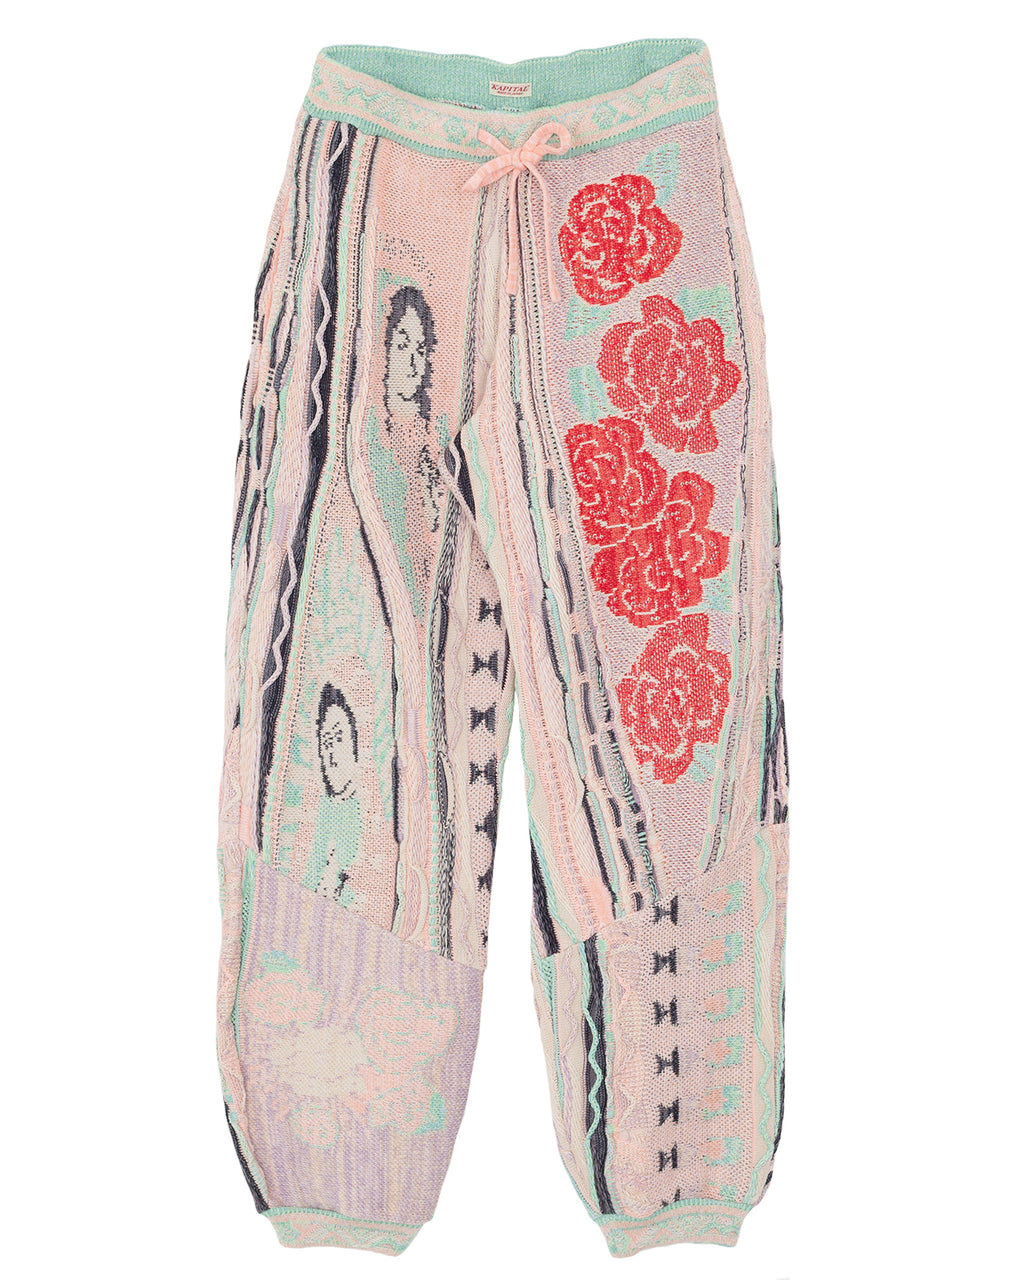 Kapital 7G Knit Virgin Mary Gaudy Sweat Pants